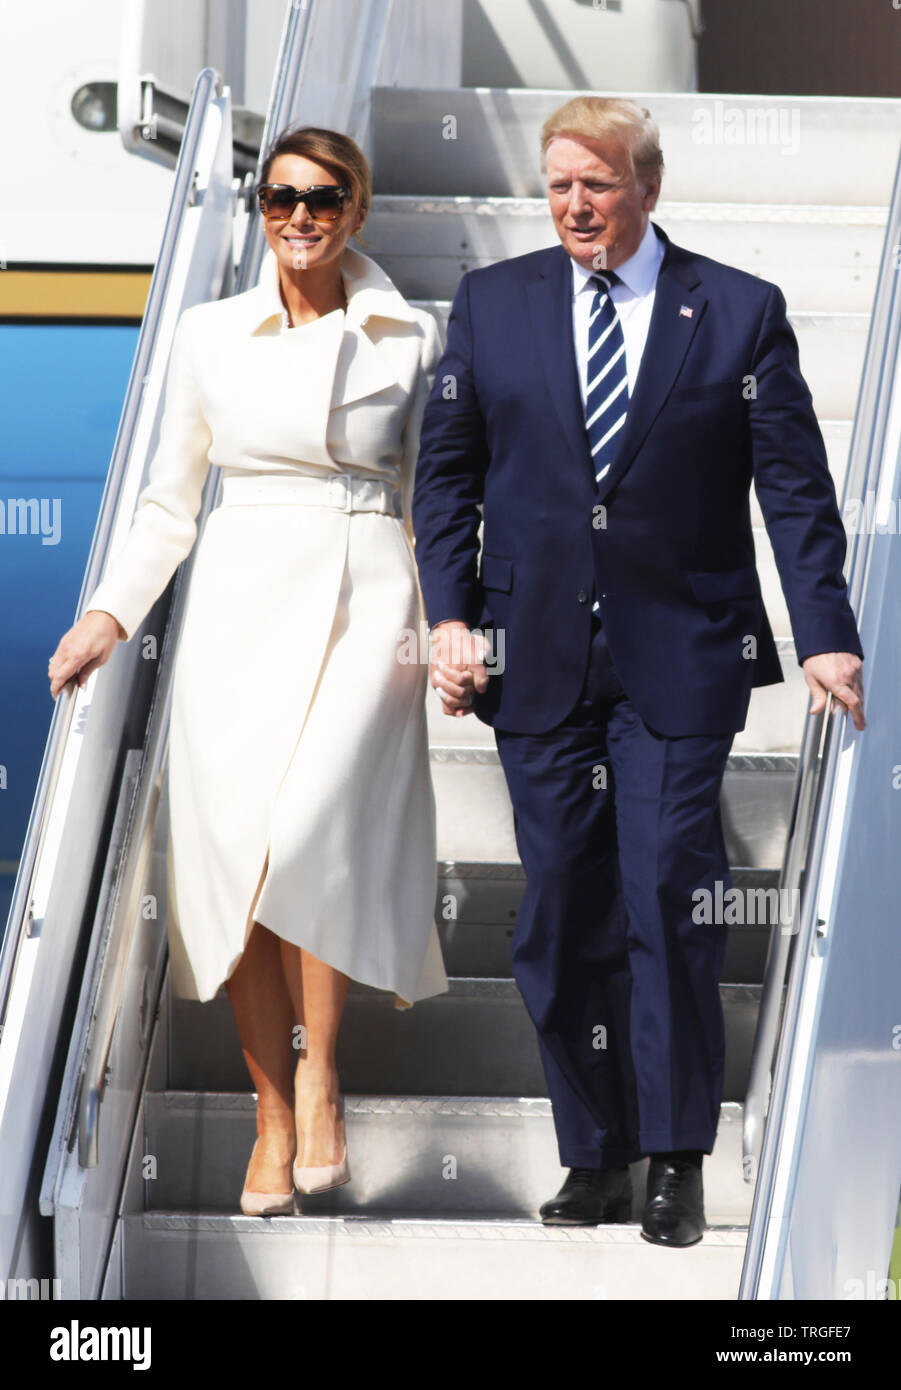 Shannon Airport, Ireland. 05th June, 2019. 5/6/2019. United States President of America Donald Trump Visits Ireland. Pictured is the President of the United States Mr Donald Trump and the First Lady Melania cominthe step of Airforce One while arriving at Shannon Airport, Ireland. Photo: Leah Farrell / RollingNews Credit: RollingNews.ie/Alamy Live News Stock Photo